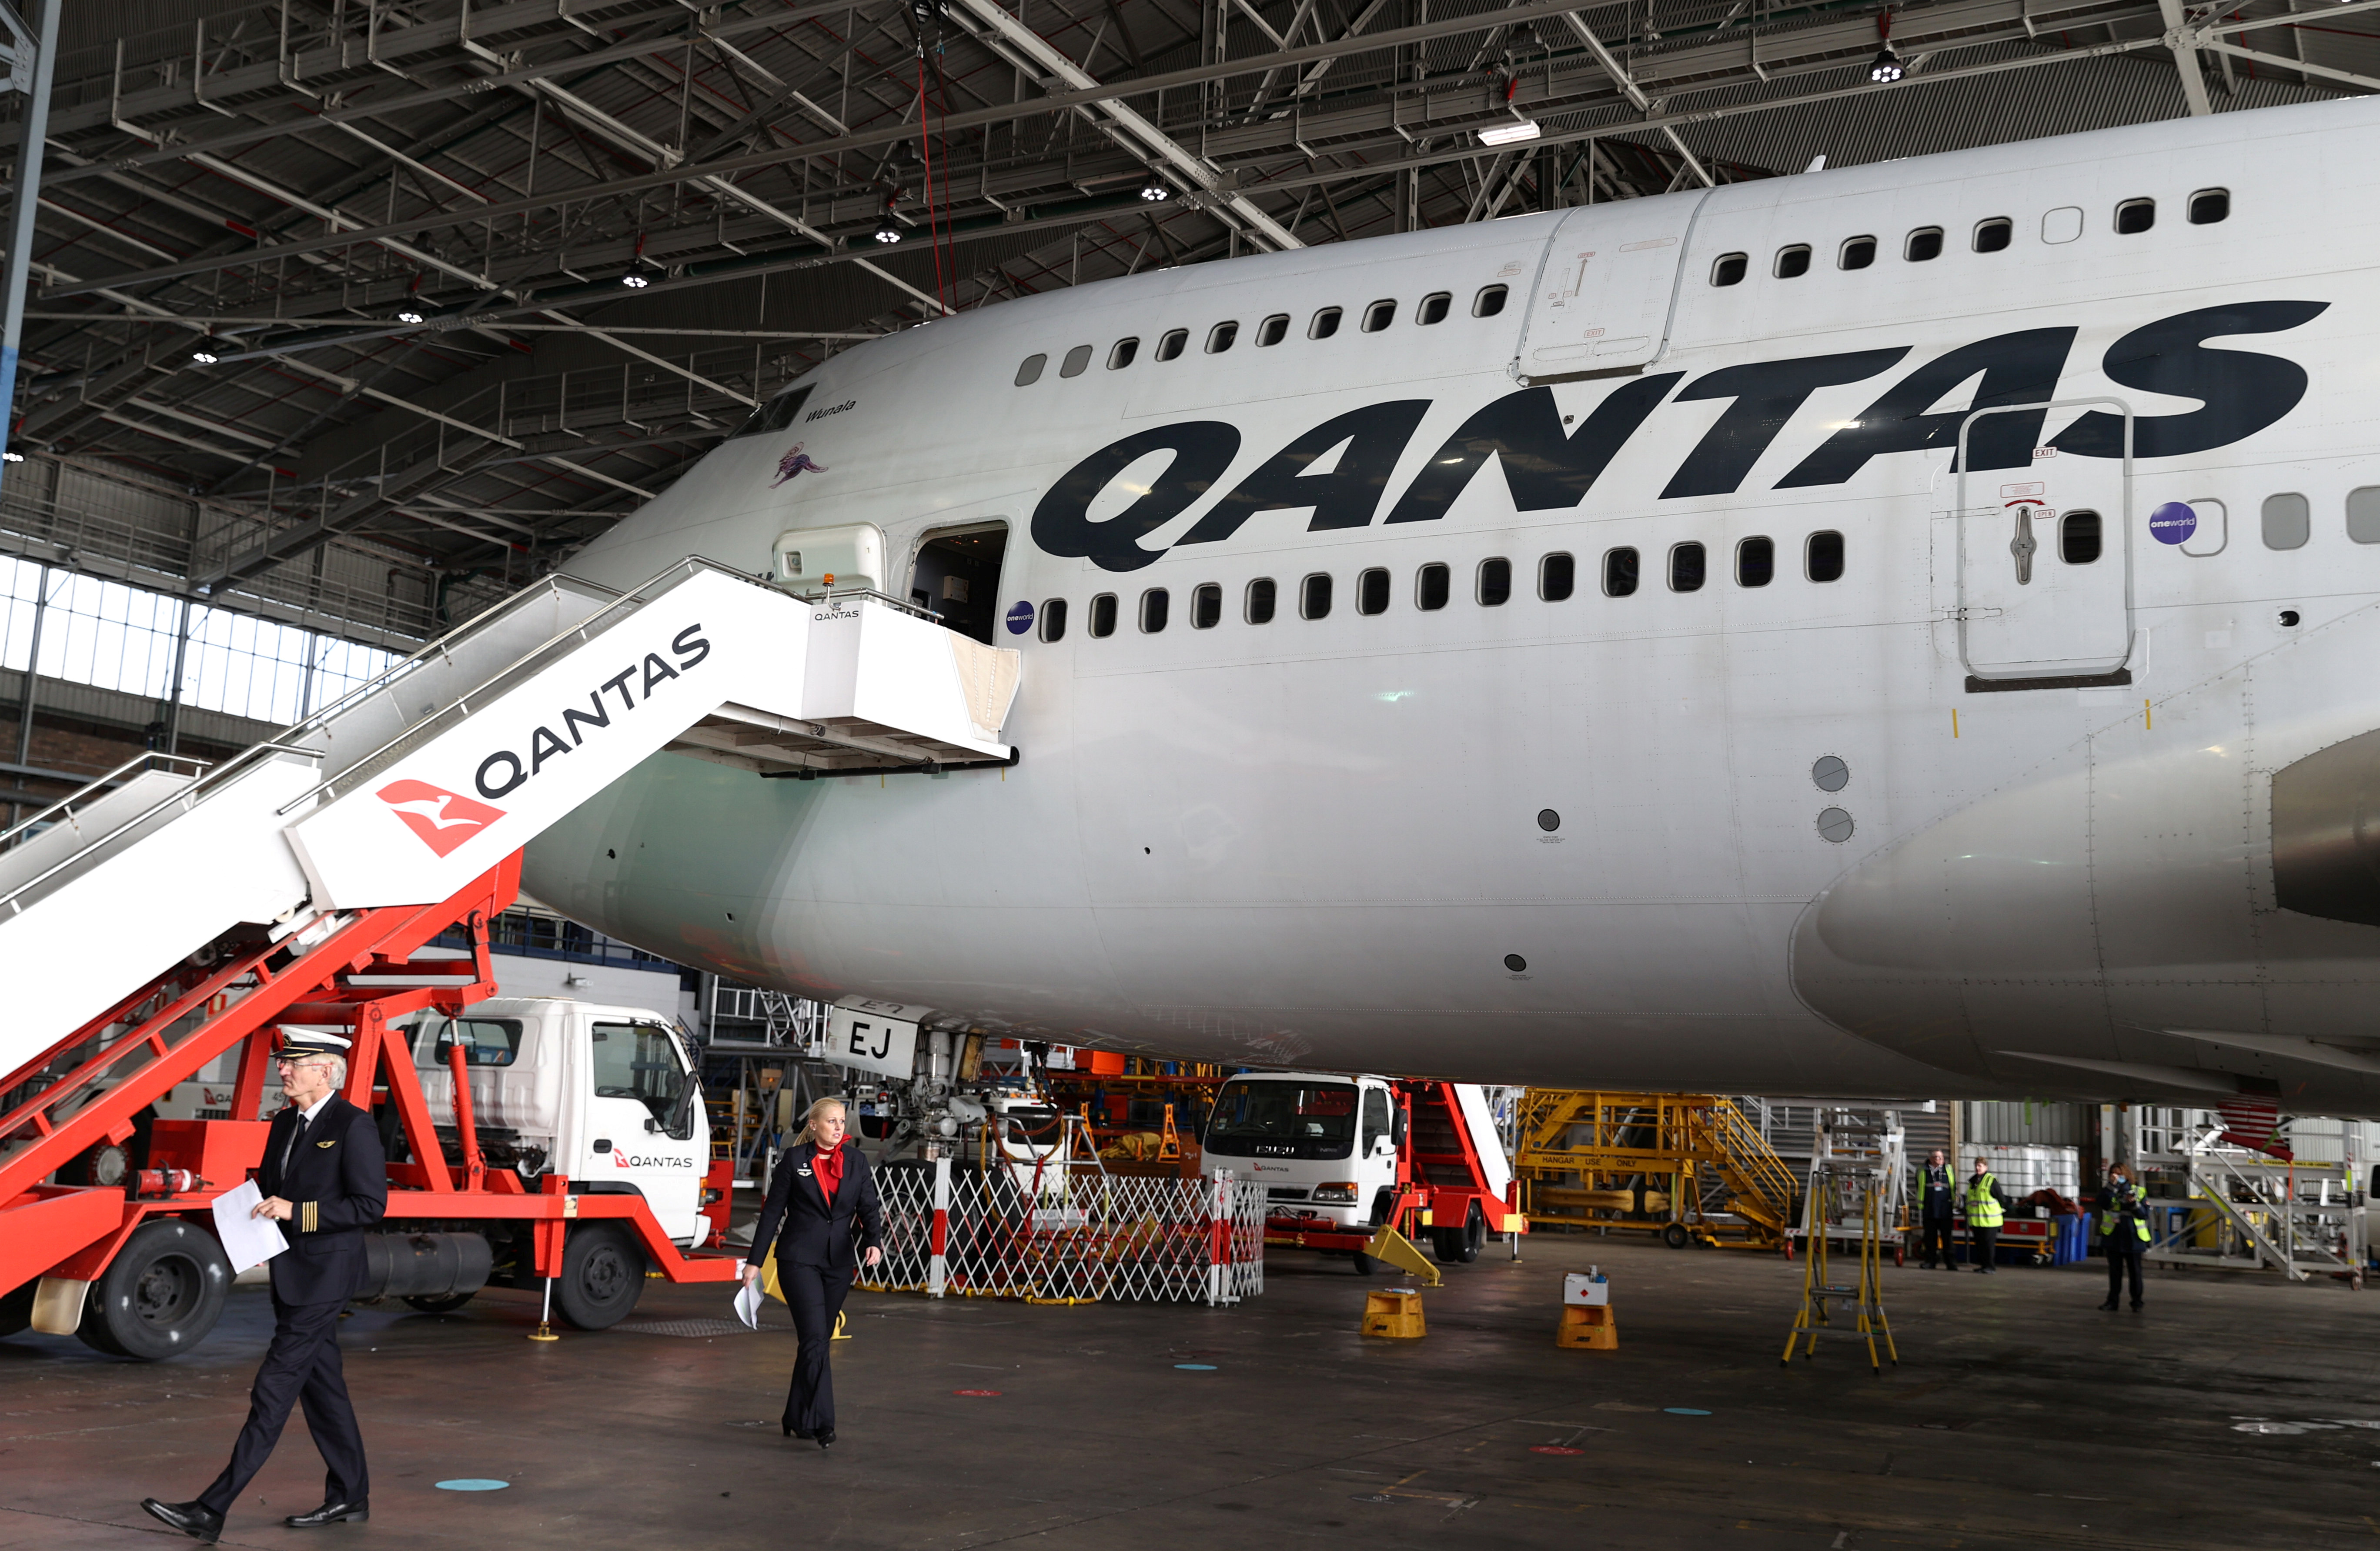 Qantas, which is retiring its remaining Boeing 747 planes early due to the coronavirus disease (COVID-19) pandemic, celebrates the departure of its last 747 jumbo jet from the Sydney Airport in Sydney, Australia, July 22, 2020.  REUTERS/Loren Elliott